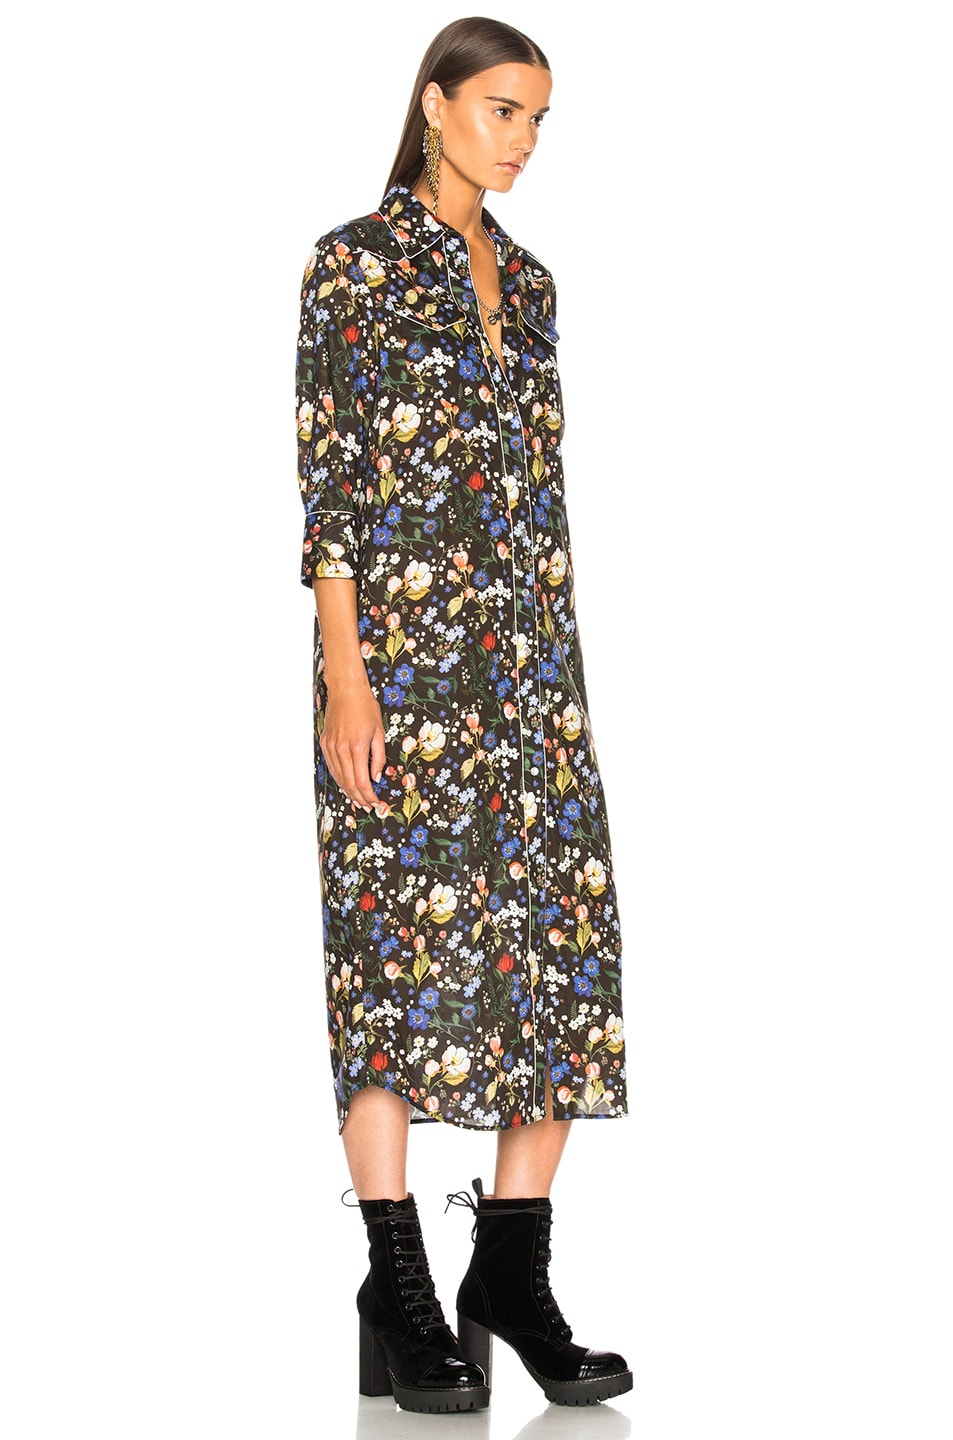 Image 3 of R13 3/4 Sleeve Cowboy Dress in Multicolor on Black Floral